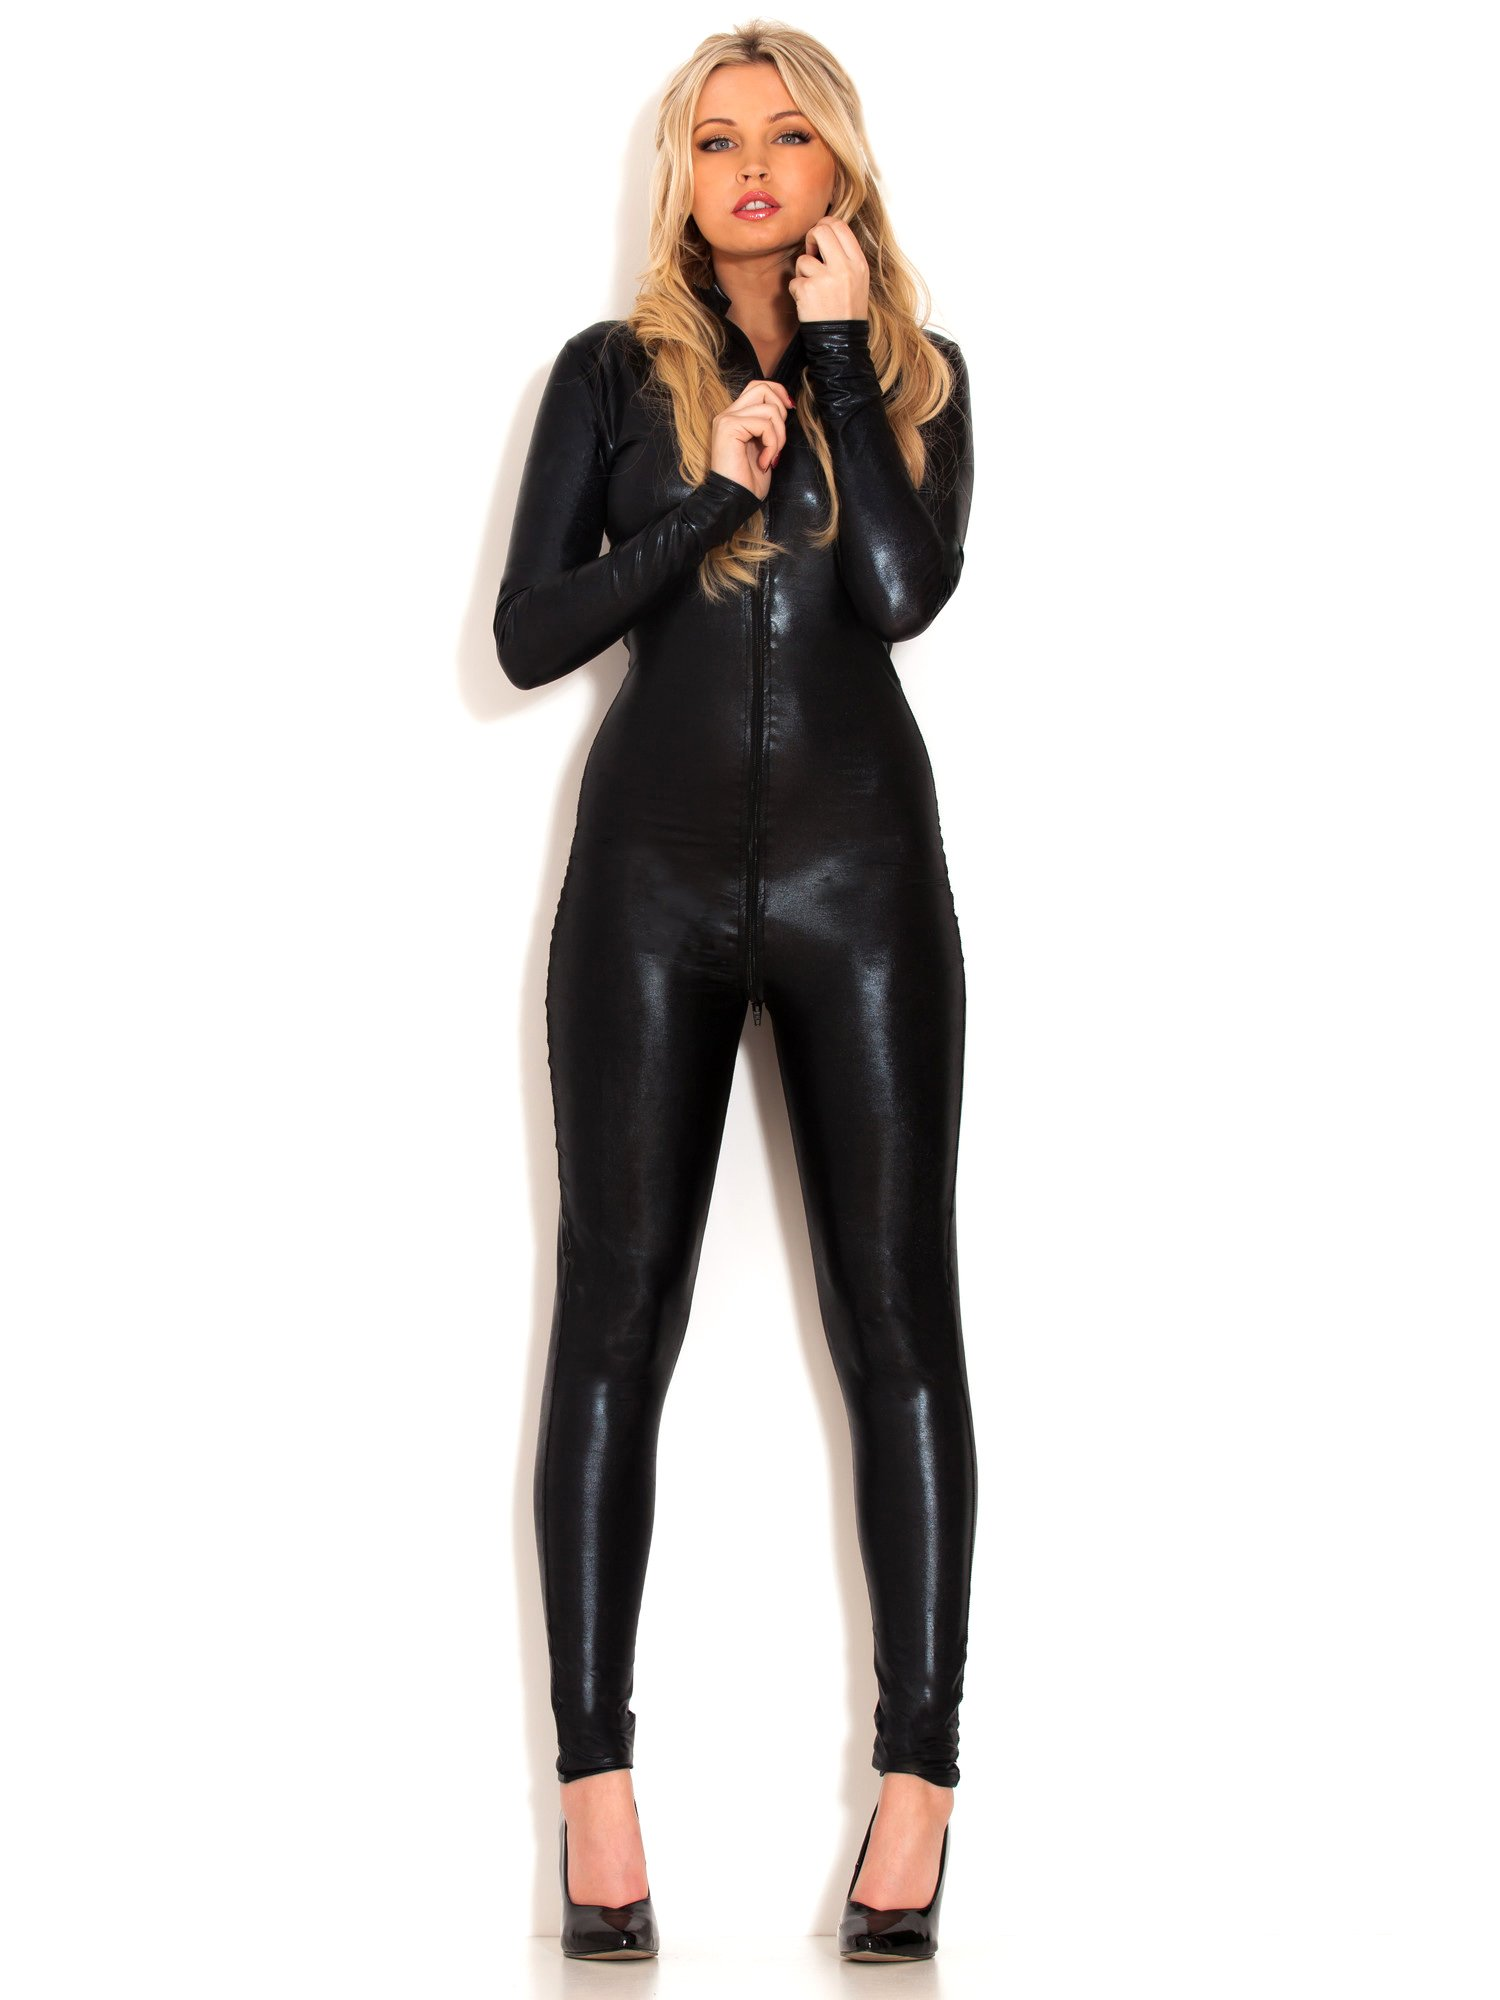 Honour Women's Catsuit in Wetlook Black Size UK 12-14 (M-L)